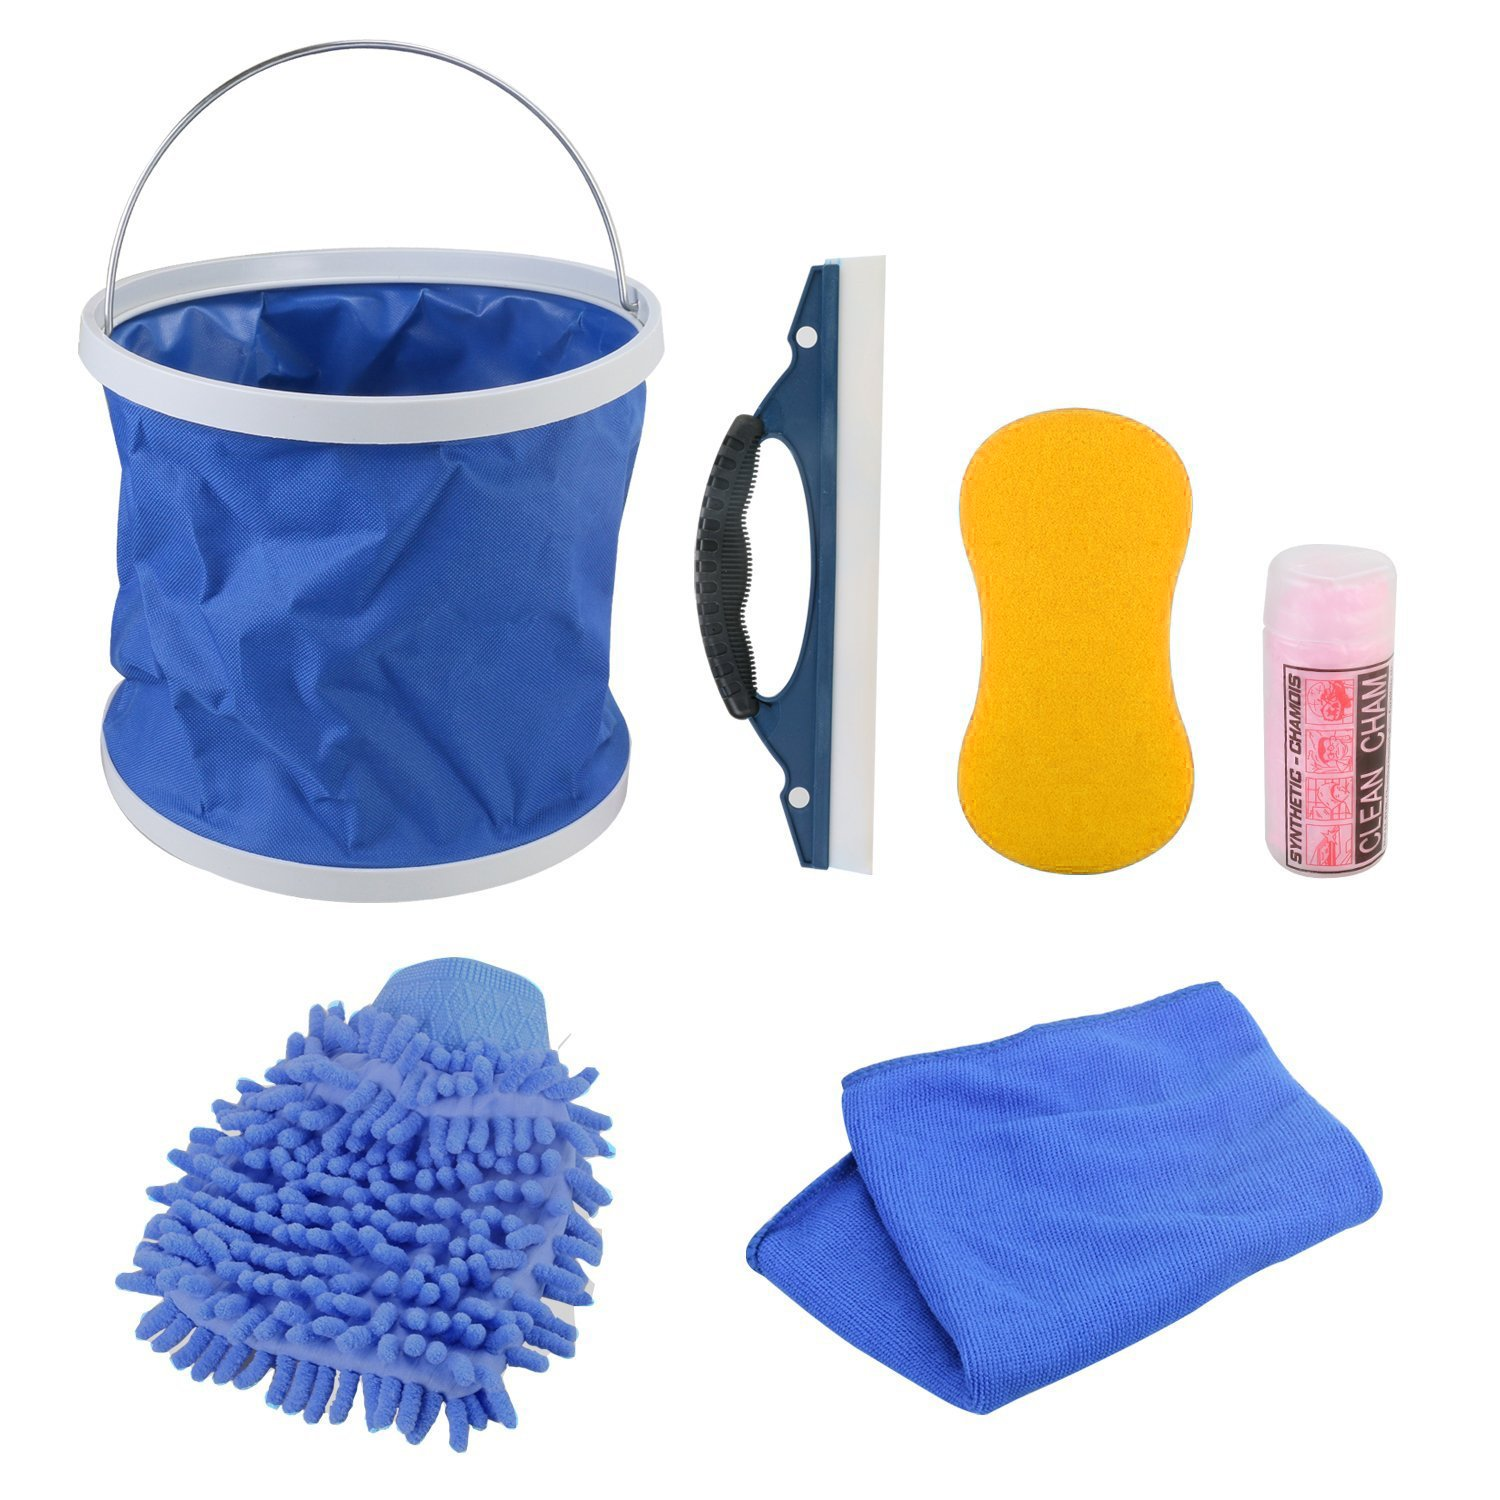 7 Pieces Car Motorcycle Wash Kit Exterior, GOGOLO Car Cleaning Tool Including Wash Mitt Sponge Water Absorption Towel Microfiber Cloths Window Water Blade Water Bucket, Make Your Car Brand New